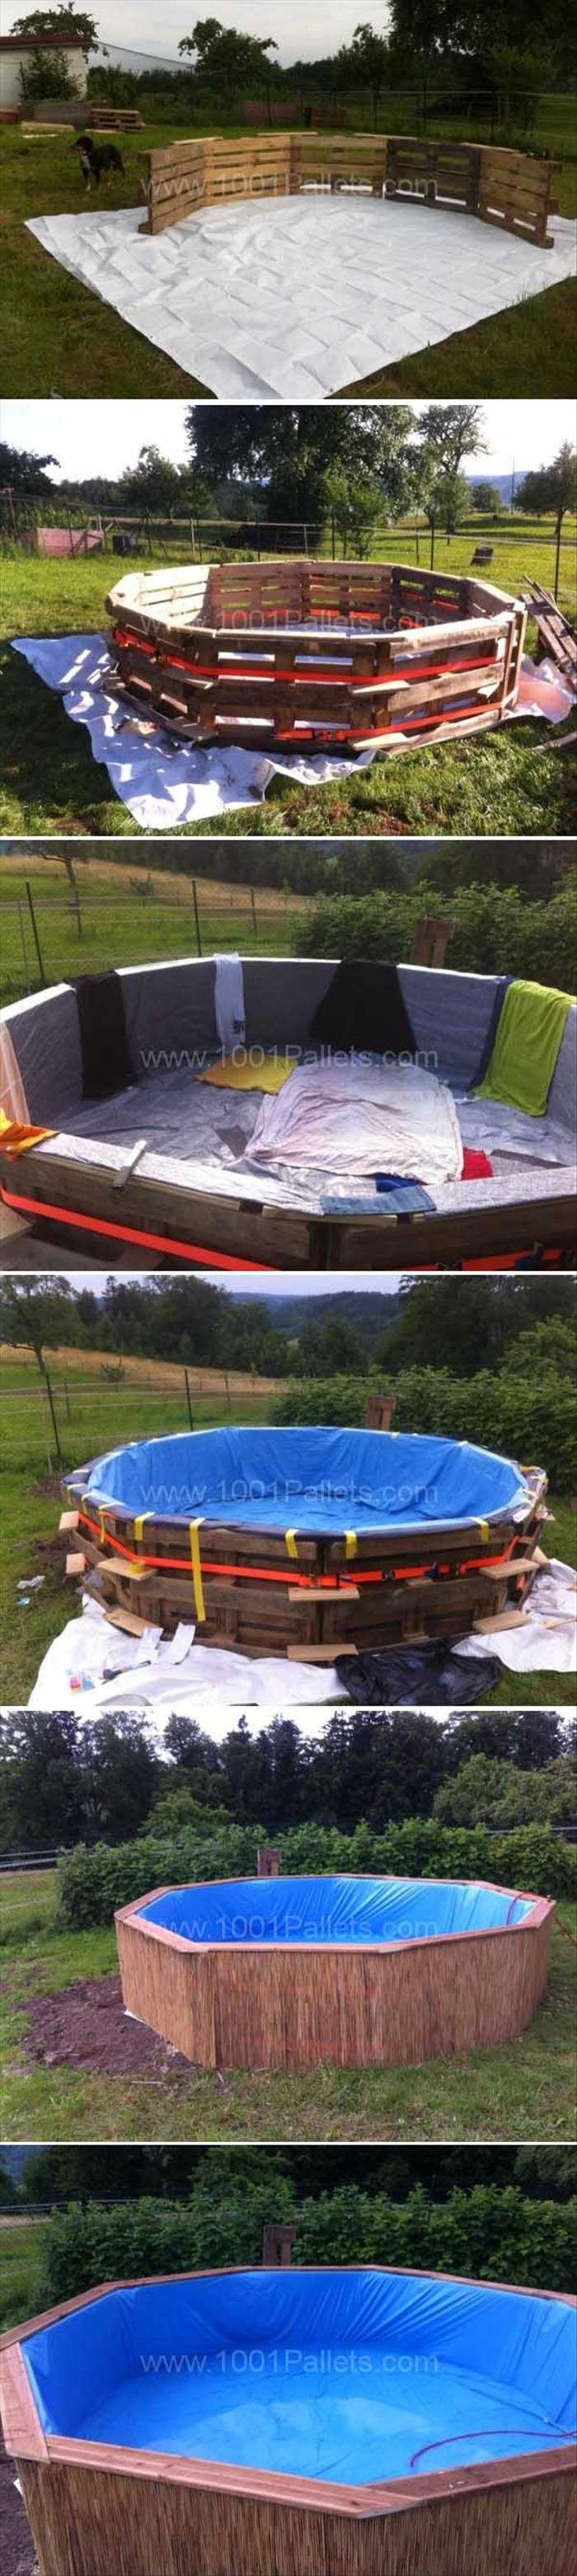 Amazing Uses For Old Pallets - 20 Pics | DIVERS | Pinterest ...